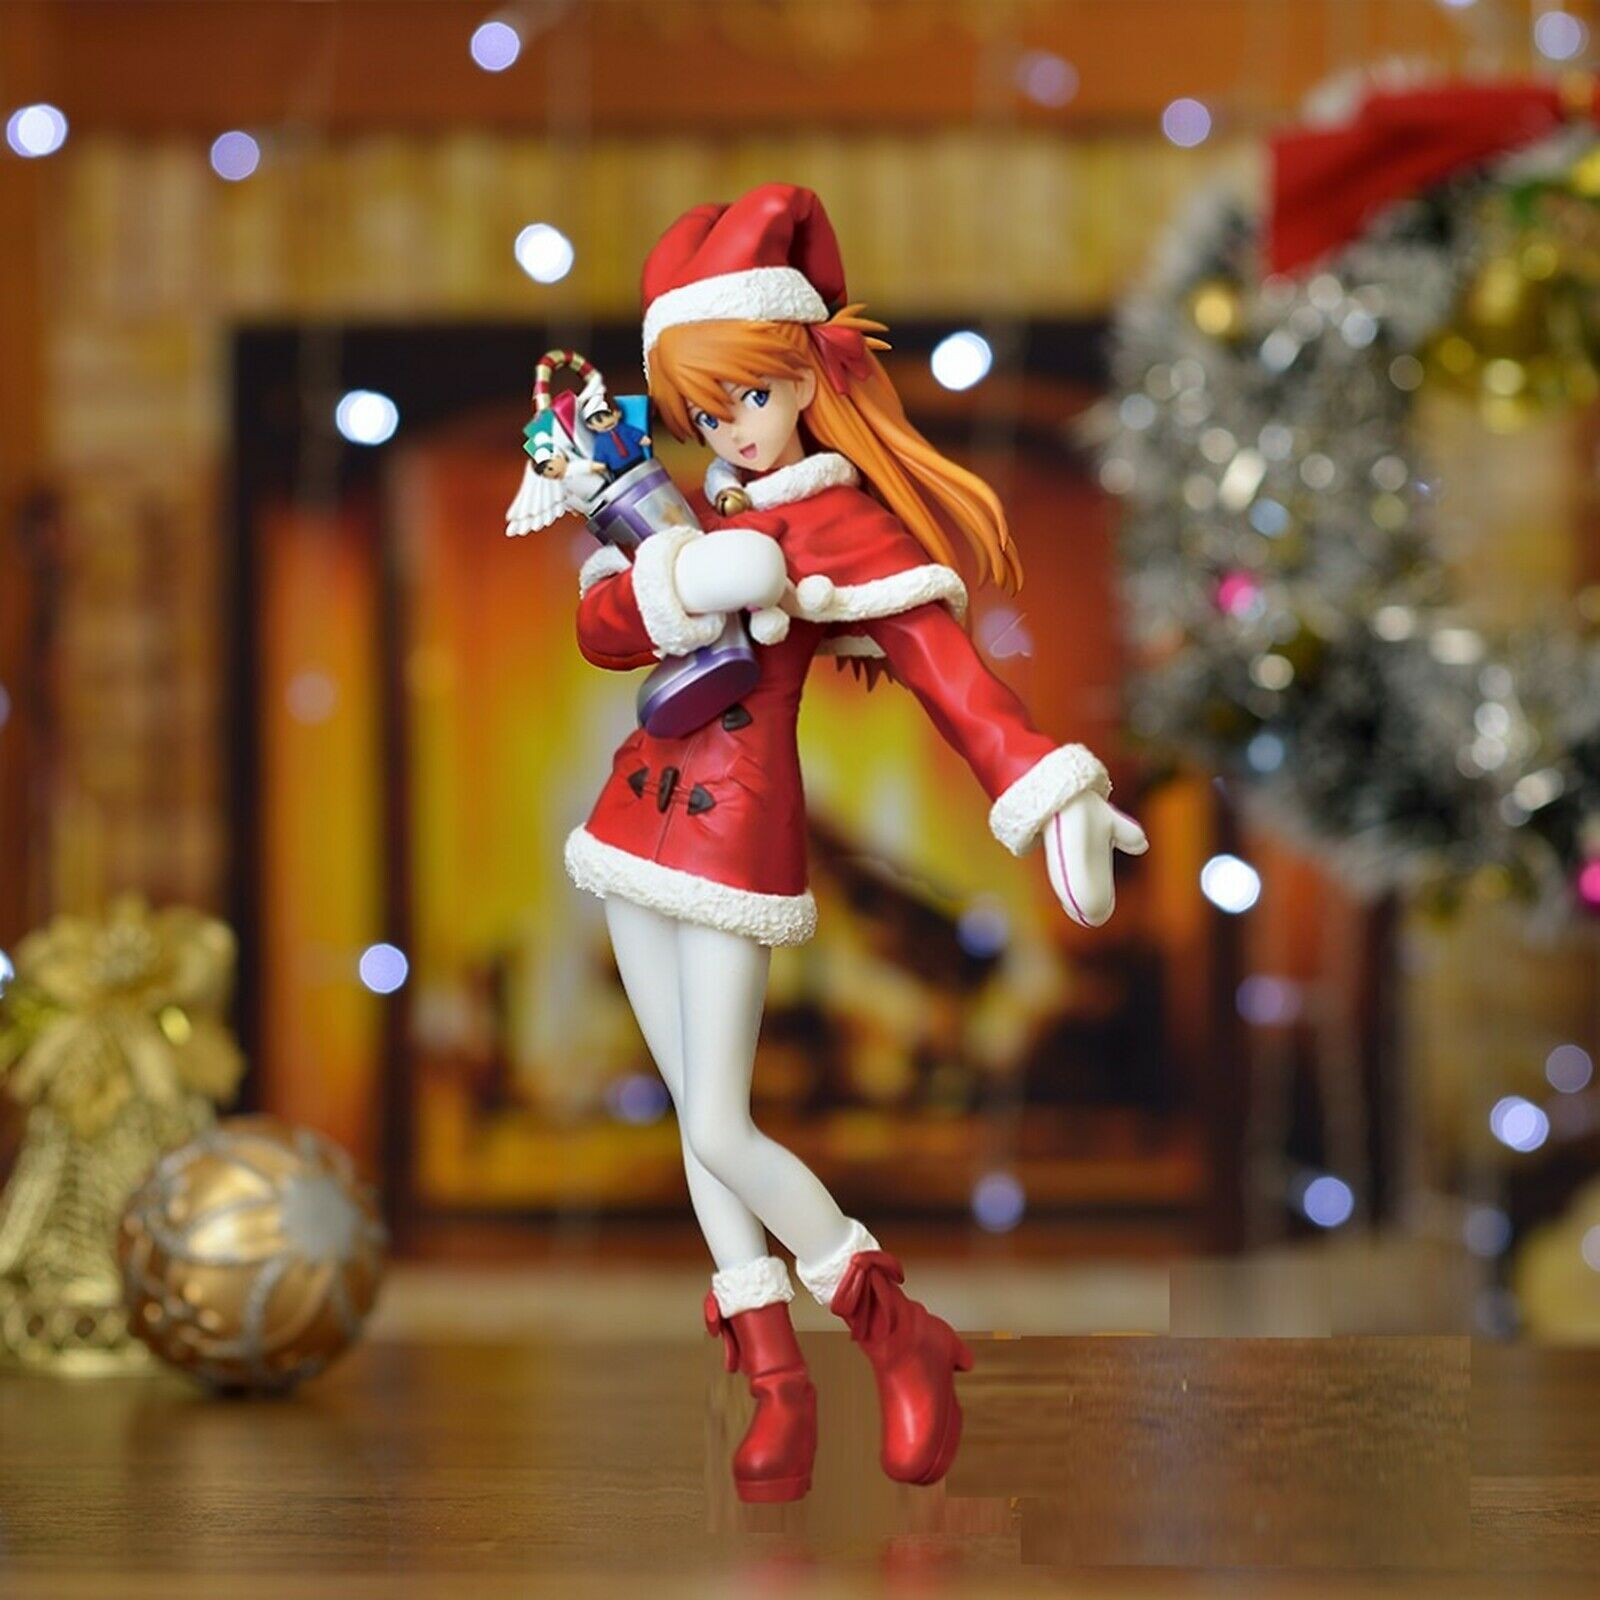 asuka-langley-christmas-ver-1.5-figure (1)